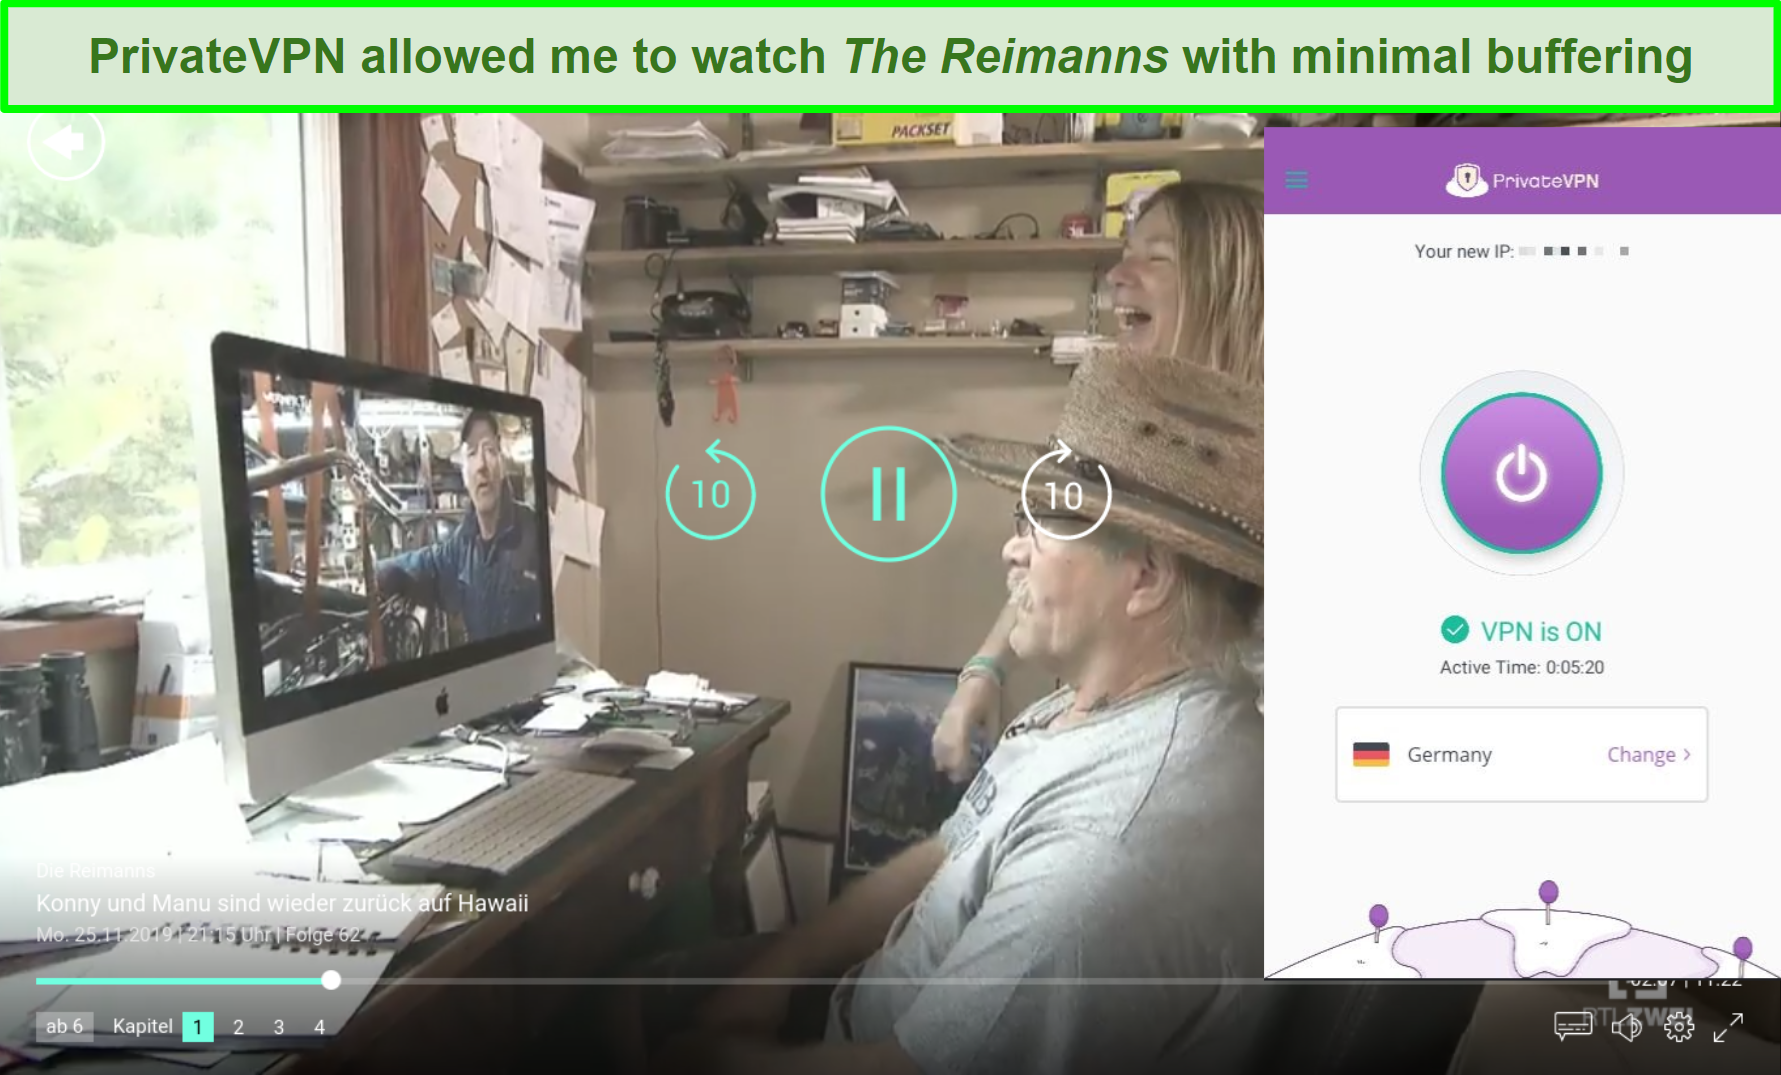 Screenshot of PrivateVPN unblocking The Reimanns on TVNOW